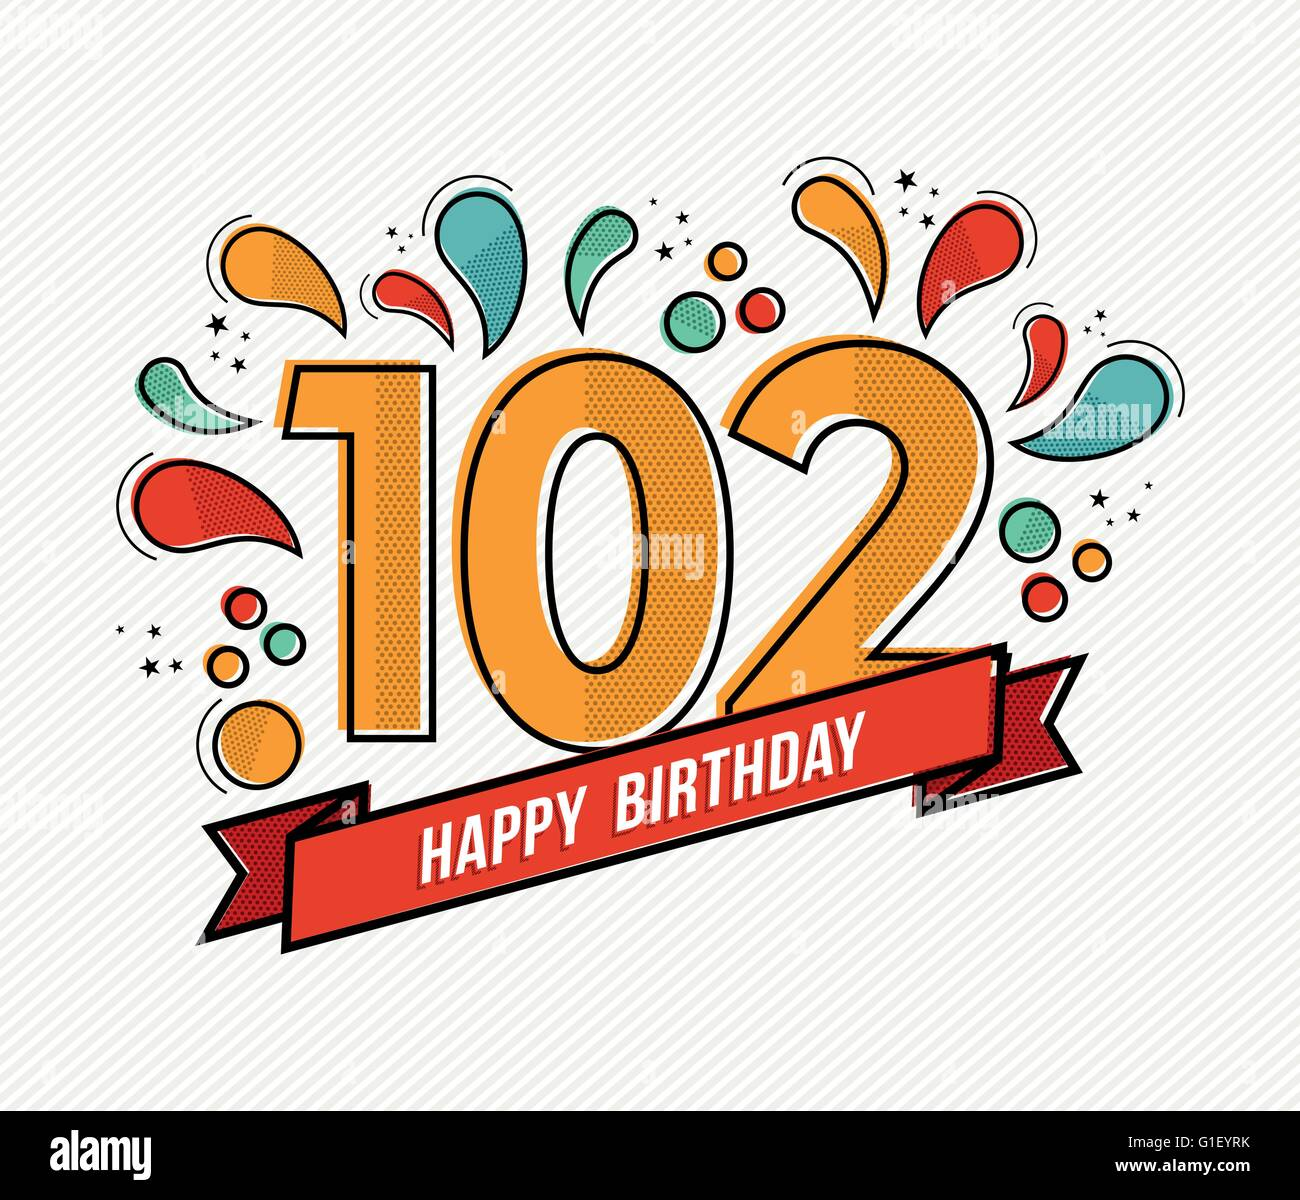 Happy Birthday Number 102, Greeting Card For Hundred Two